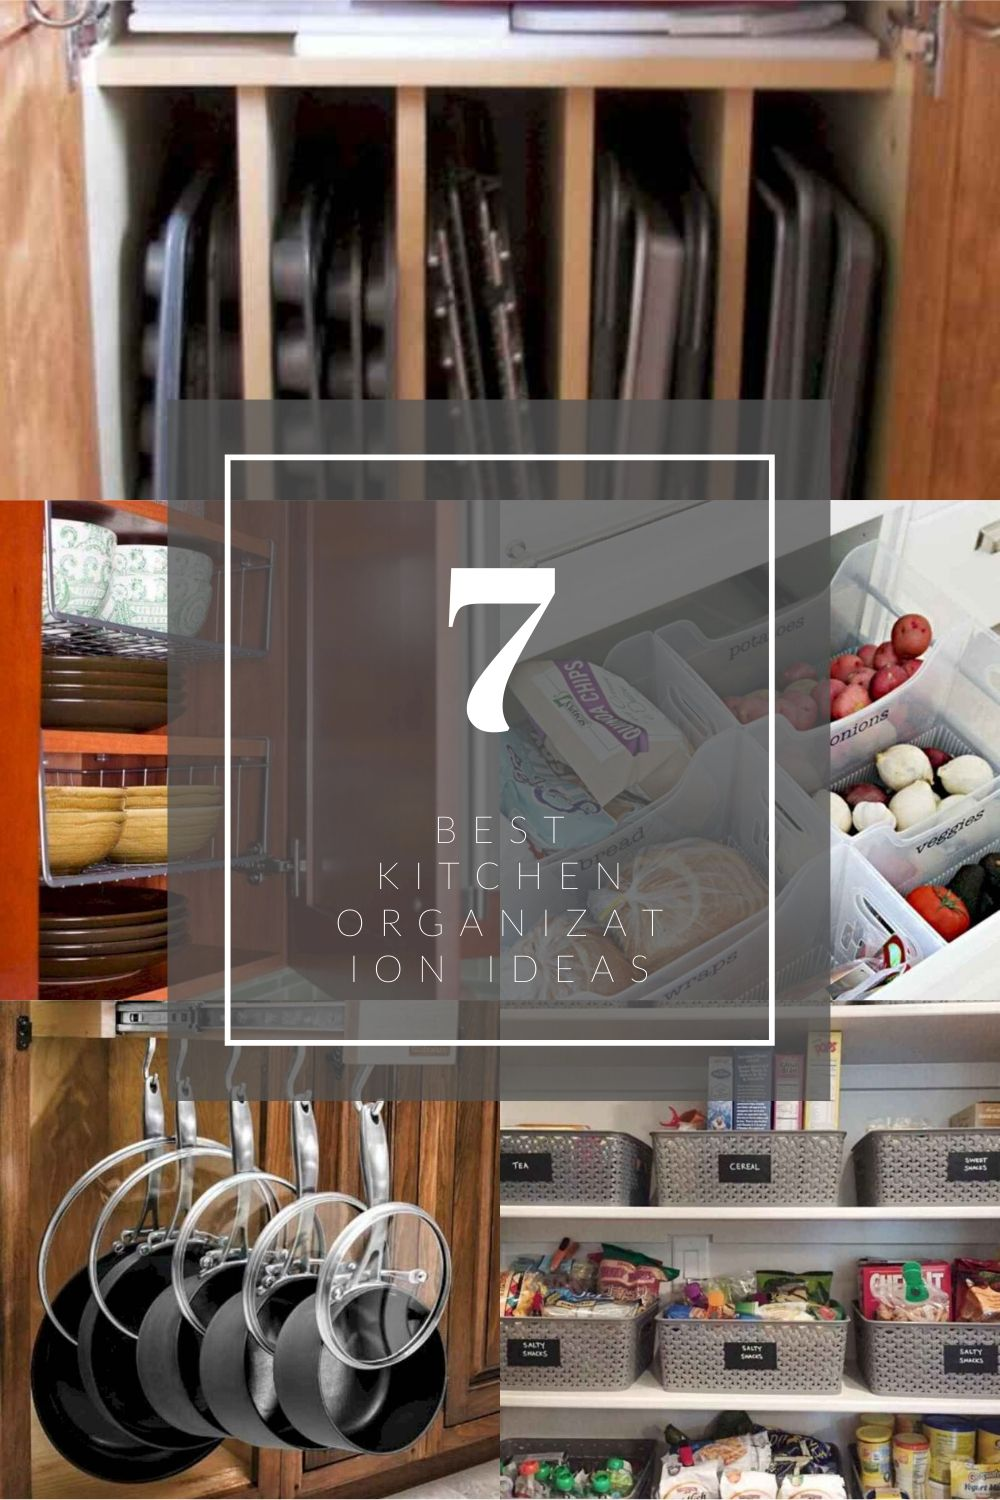 BEST KITCHEN ORGANIZATION IDEAS (7)